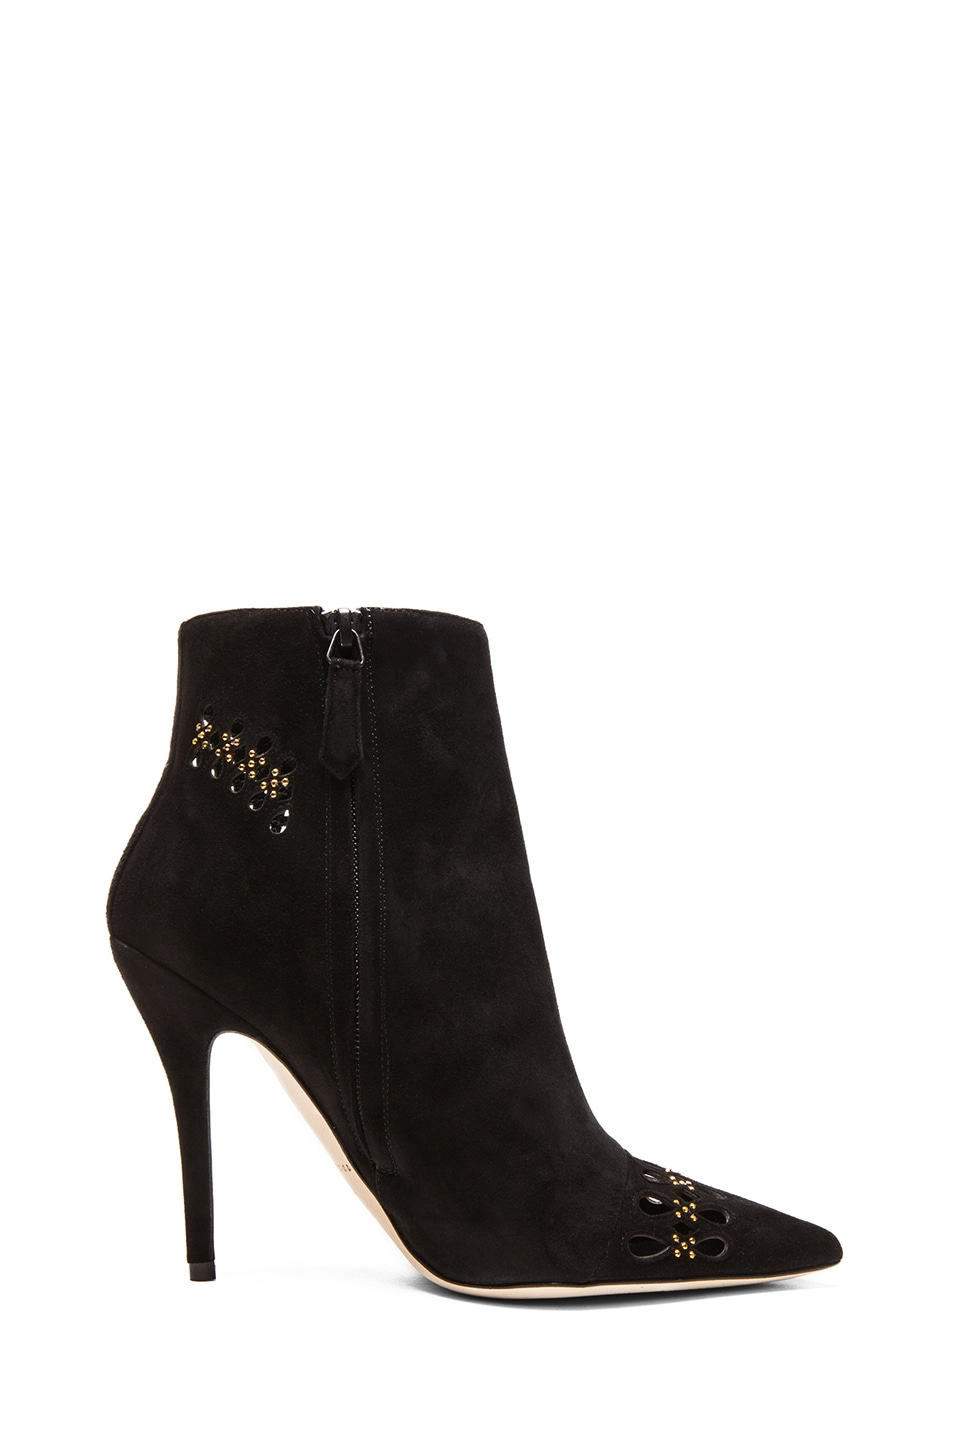 Image 5 of Brian Atwood Atena Suede Booties in Black